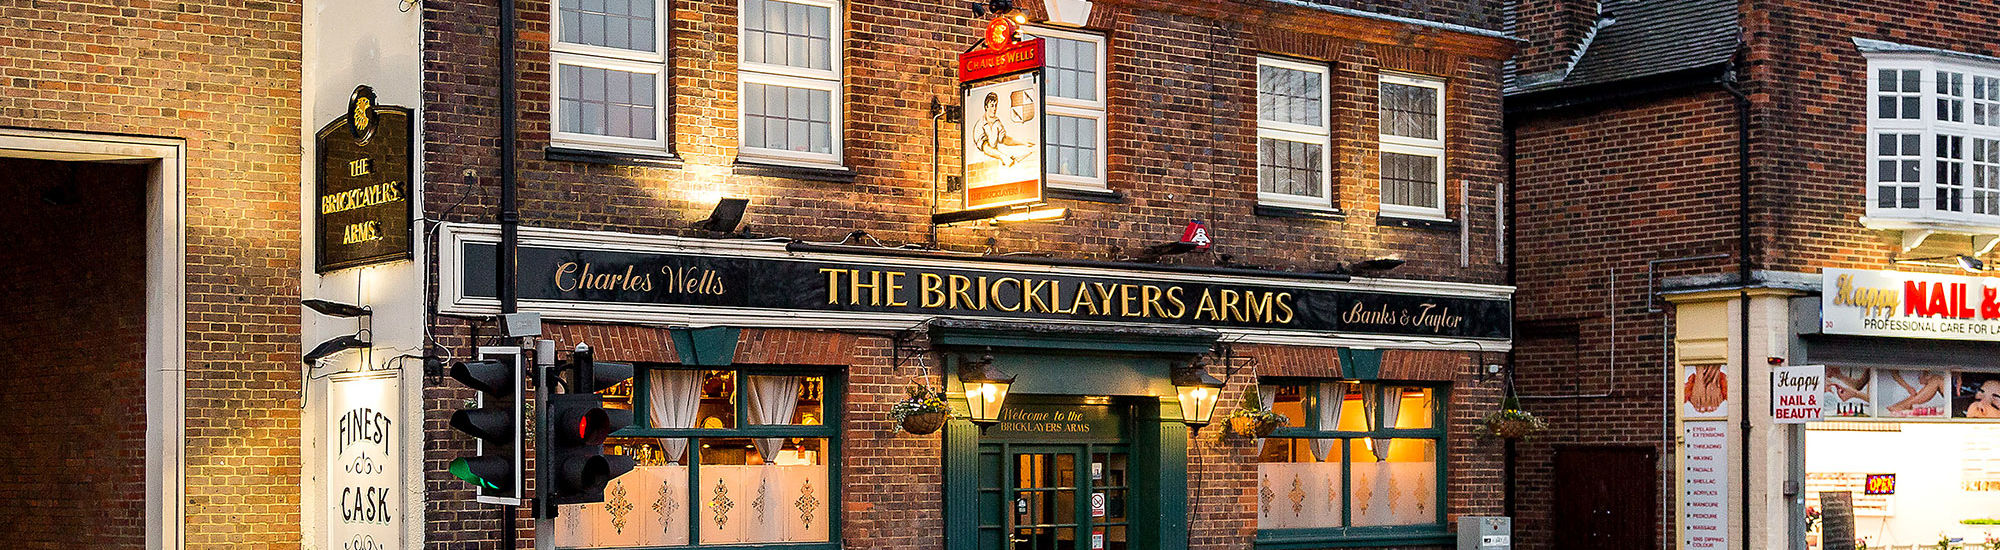 The Bricklayers Arms, Hitchin - Under Offer